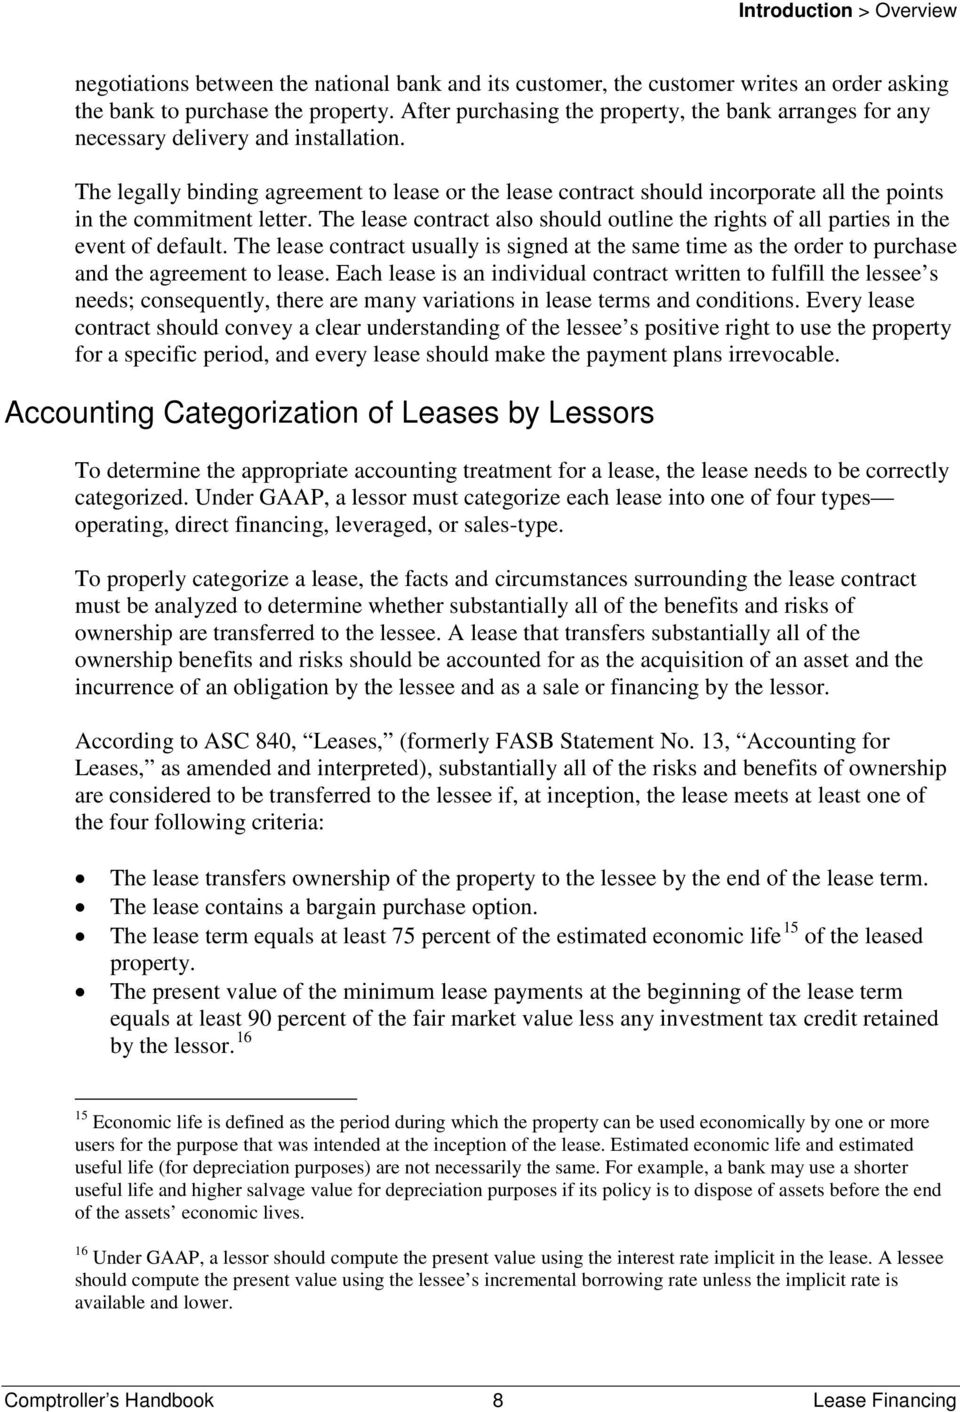 The legally binding agreement to lease or the lease contract should incorporate all the points in the commitment letter.